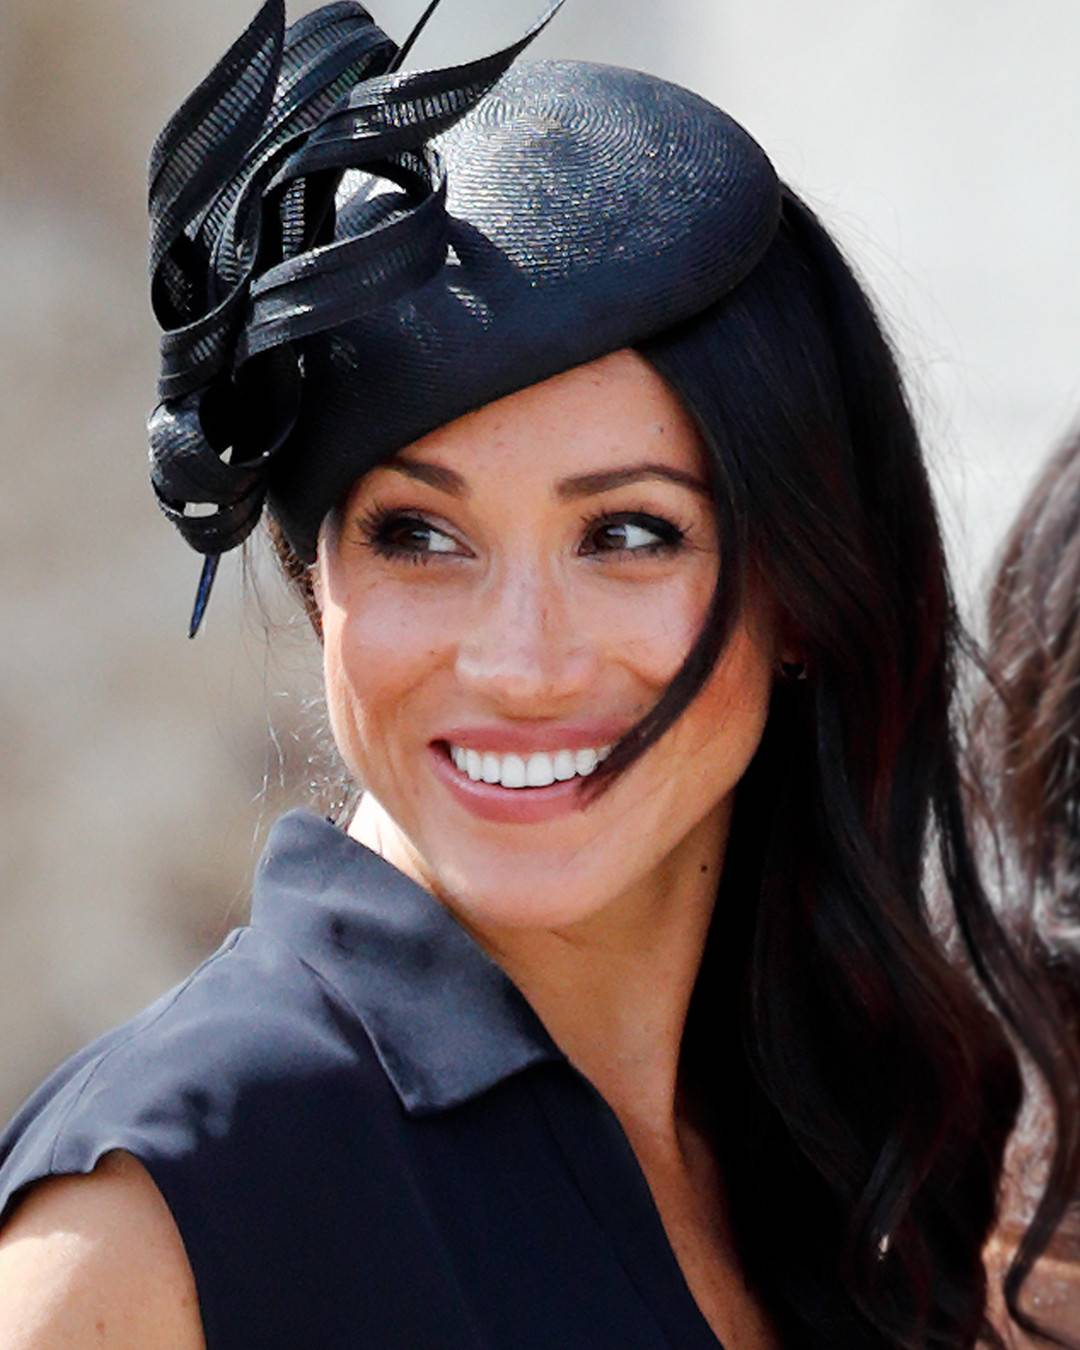 ada07edce46 Since fascinators aren t a North American tradition that Meghan would be  accustomed to